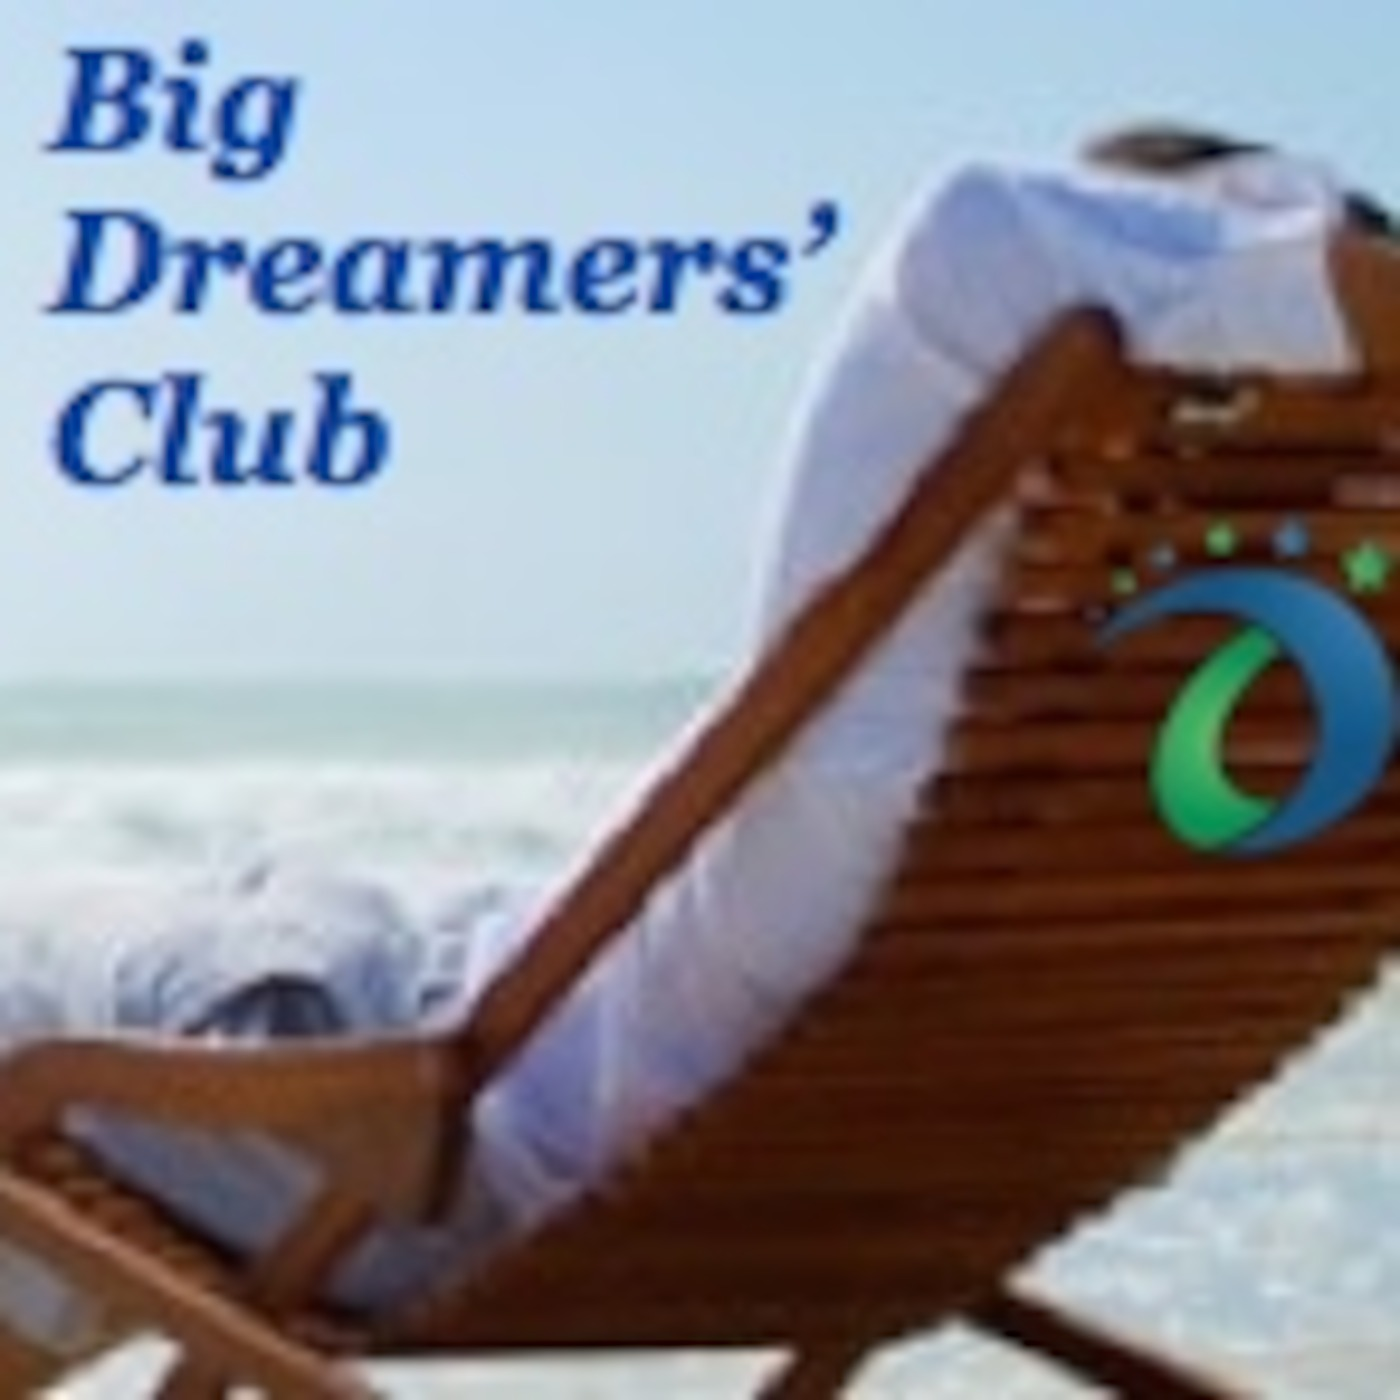 Big Dreamers' Club's Podcast